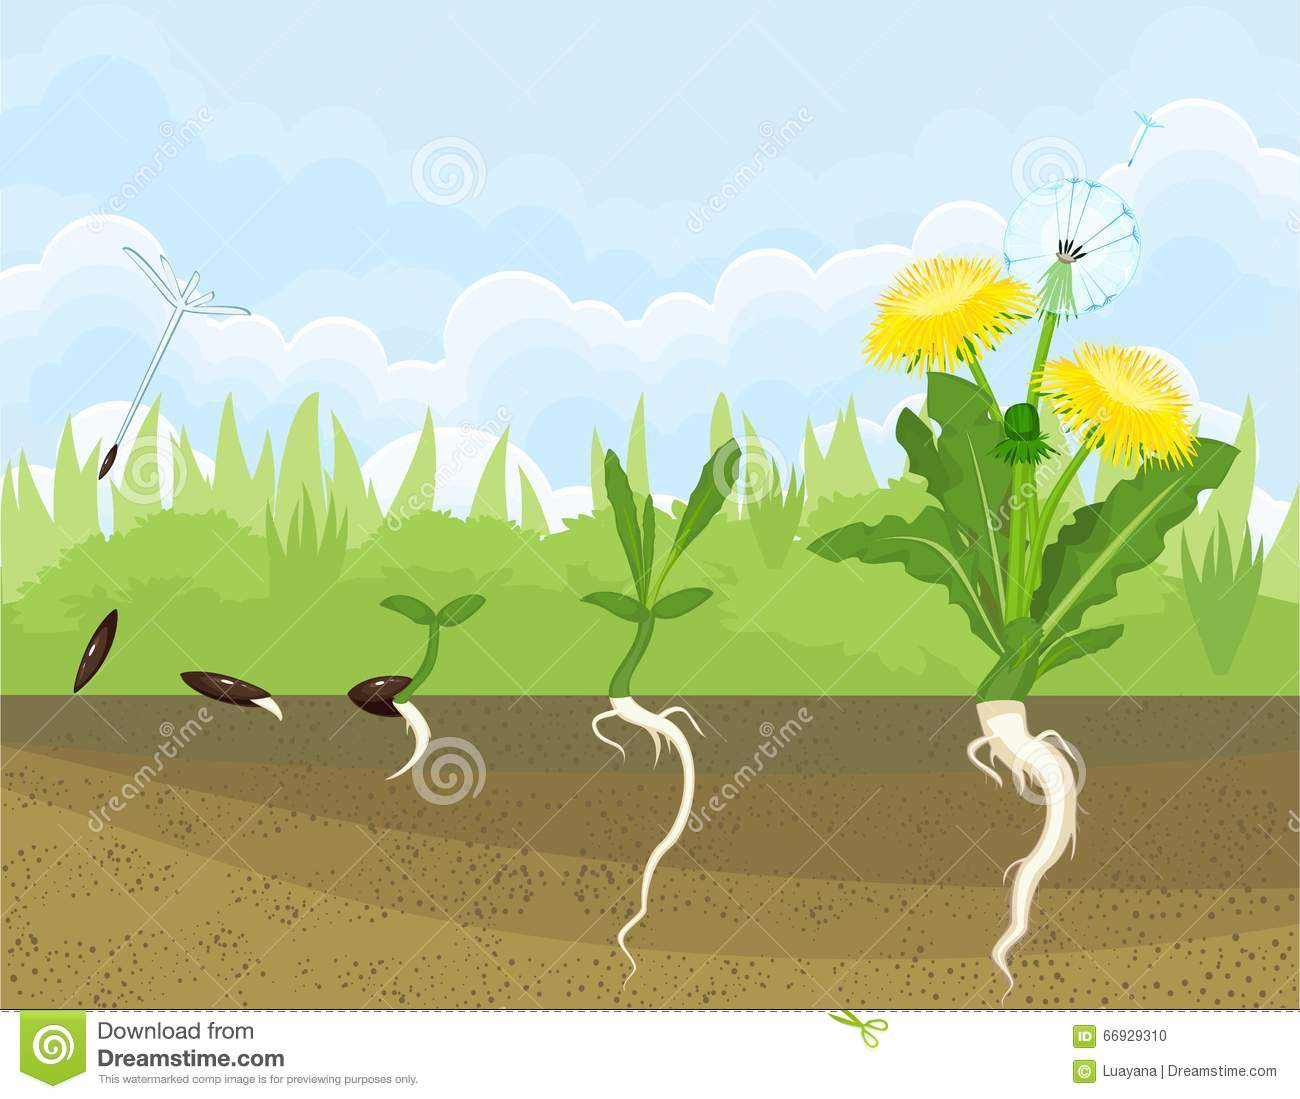 Life Cycle Of Dandelion Stock Vector Illustration Of Leaf